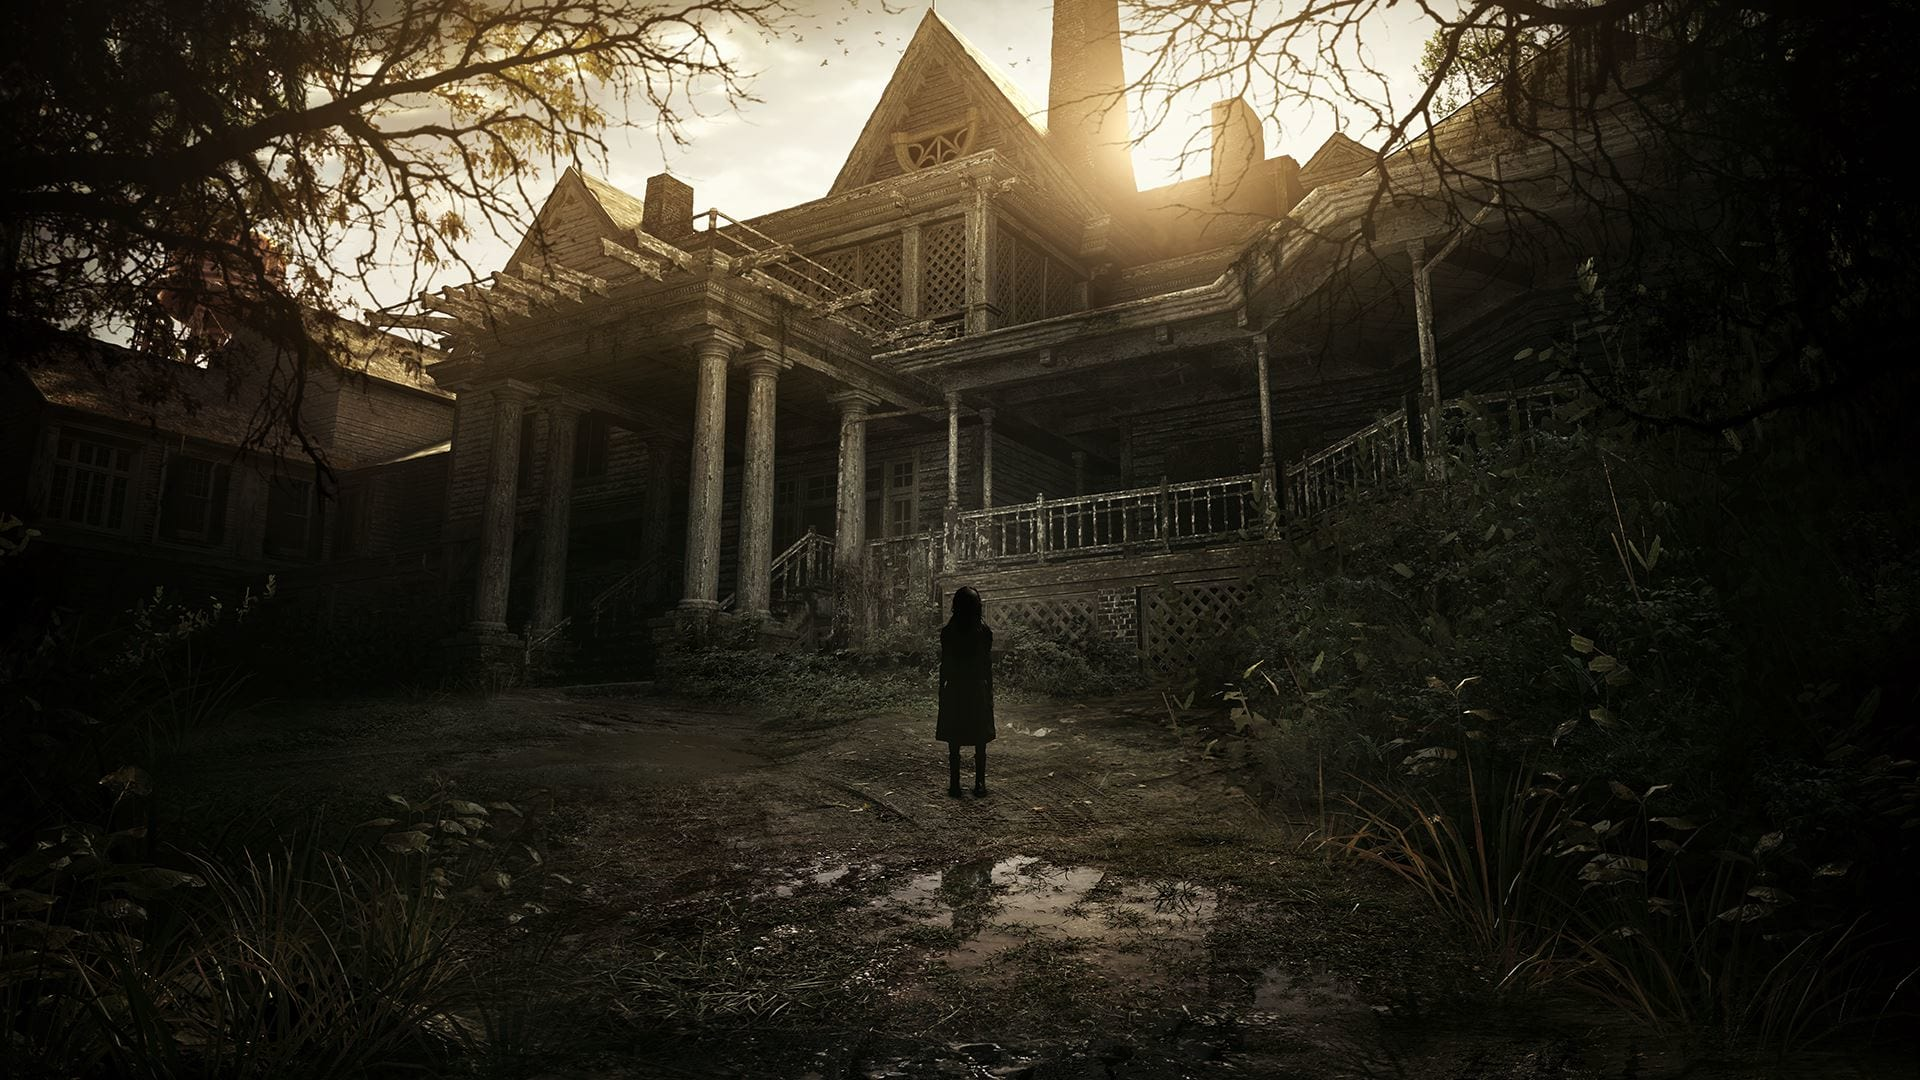 Resident Evil 7 Only Exclusive To PlayStation VR For One Year wsi imageoptim Resident Evil 7